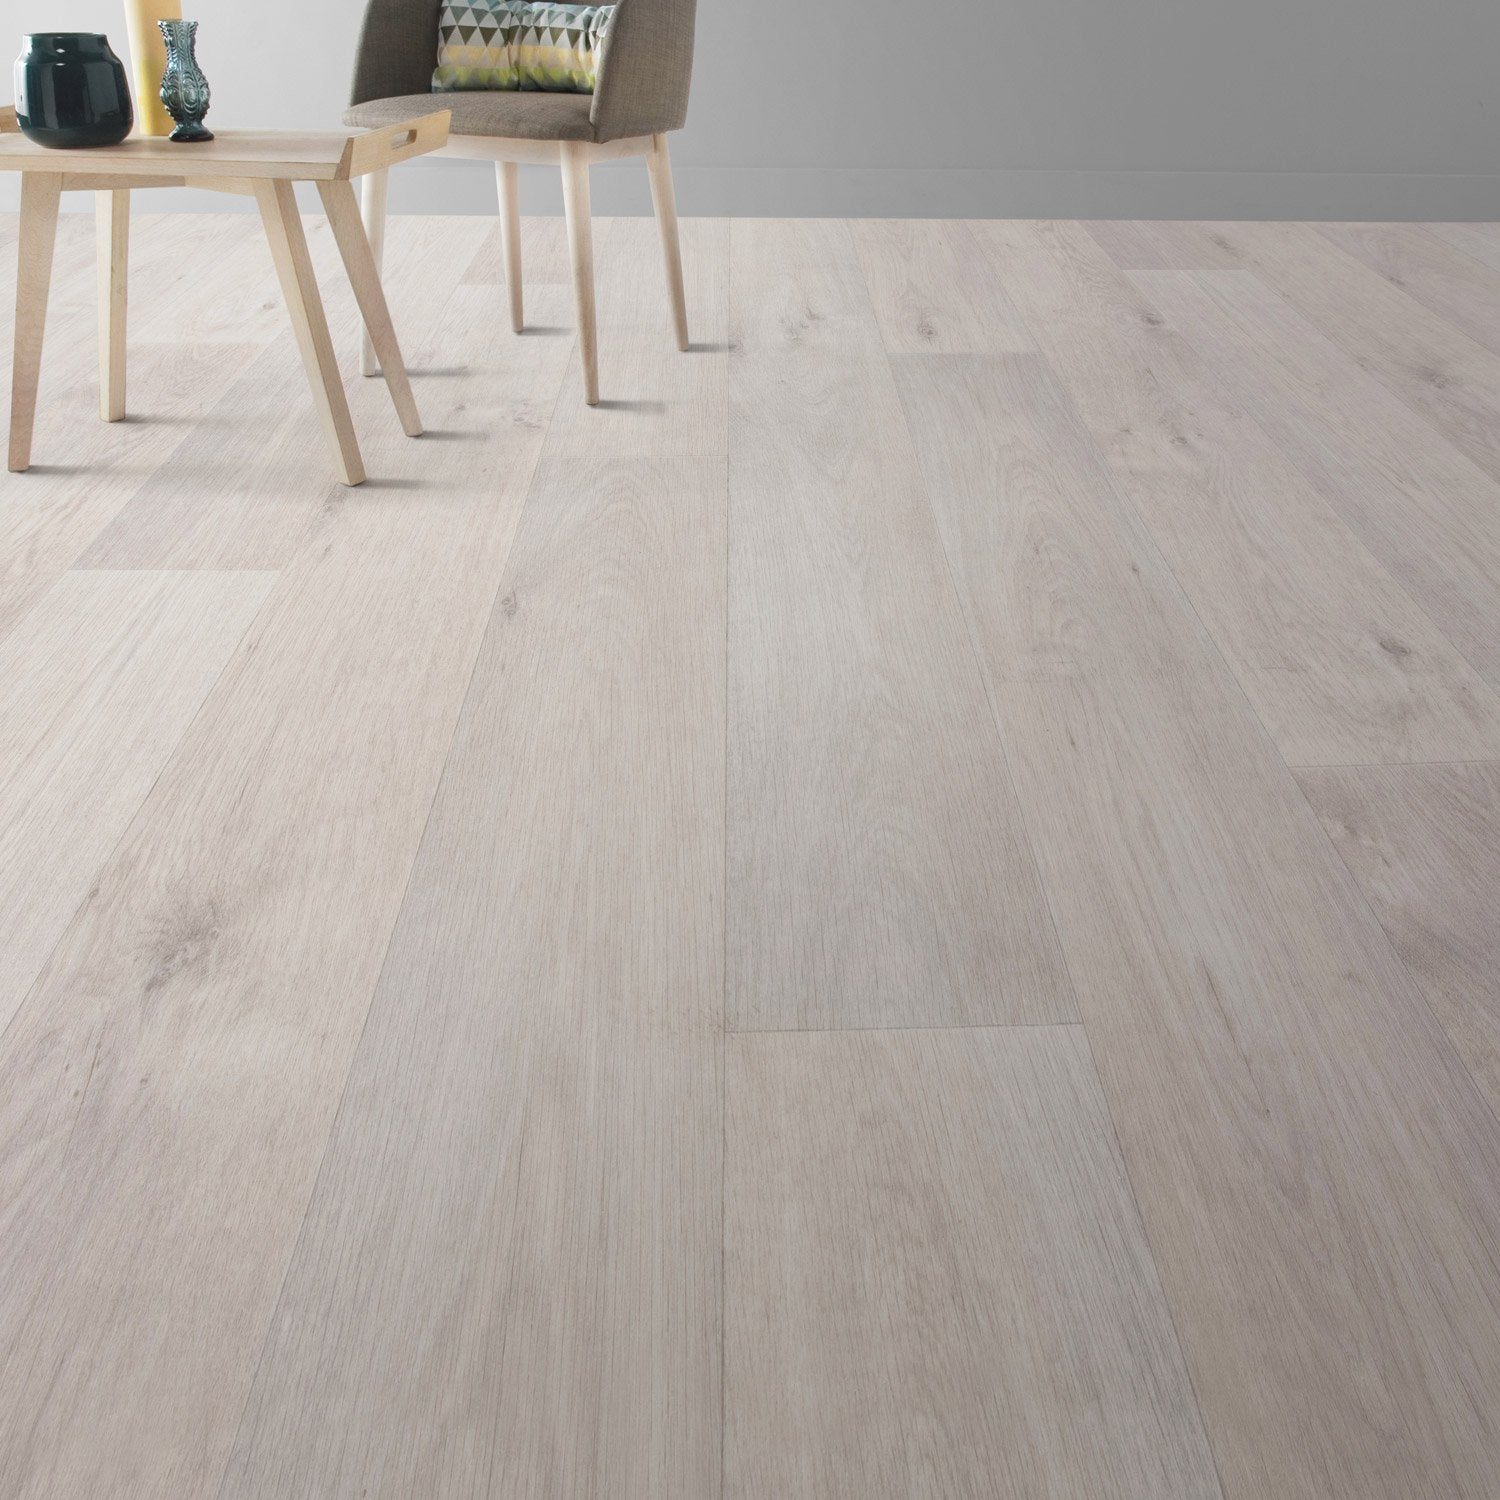 Sol pvc blanc timber gerflor texline hqr l 4 m leroy merlin - Leroy merlin revetement sol ...